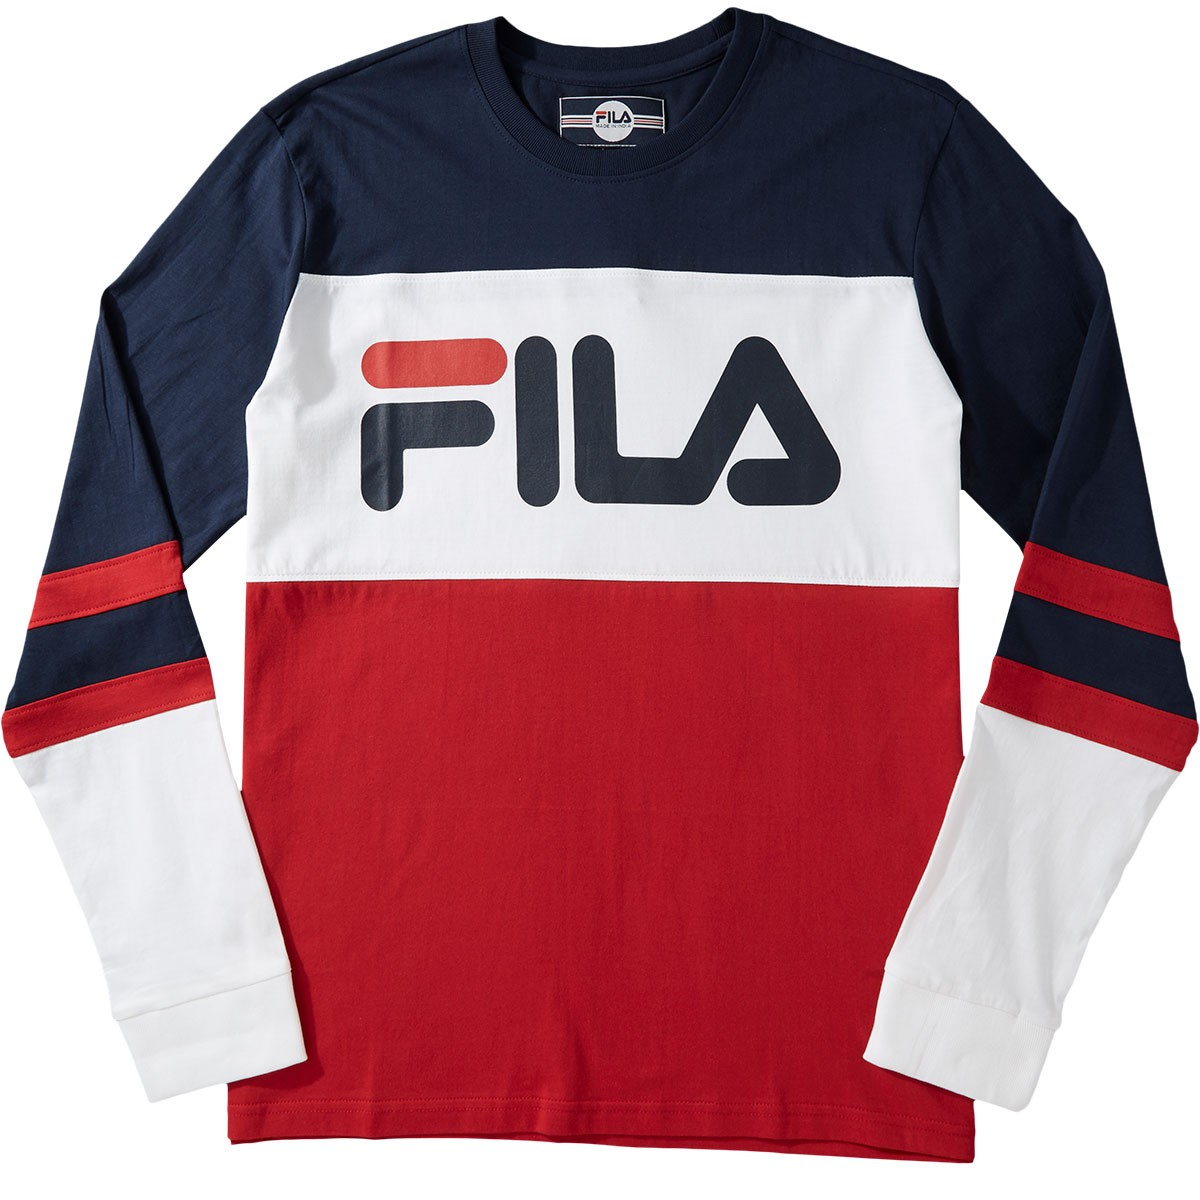 d60f7a84a437 FILA Dylan Long Sleeve T-Shirt - Navy White Chinese Red